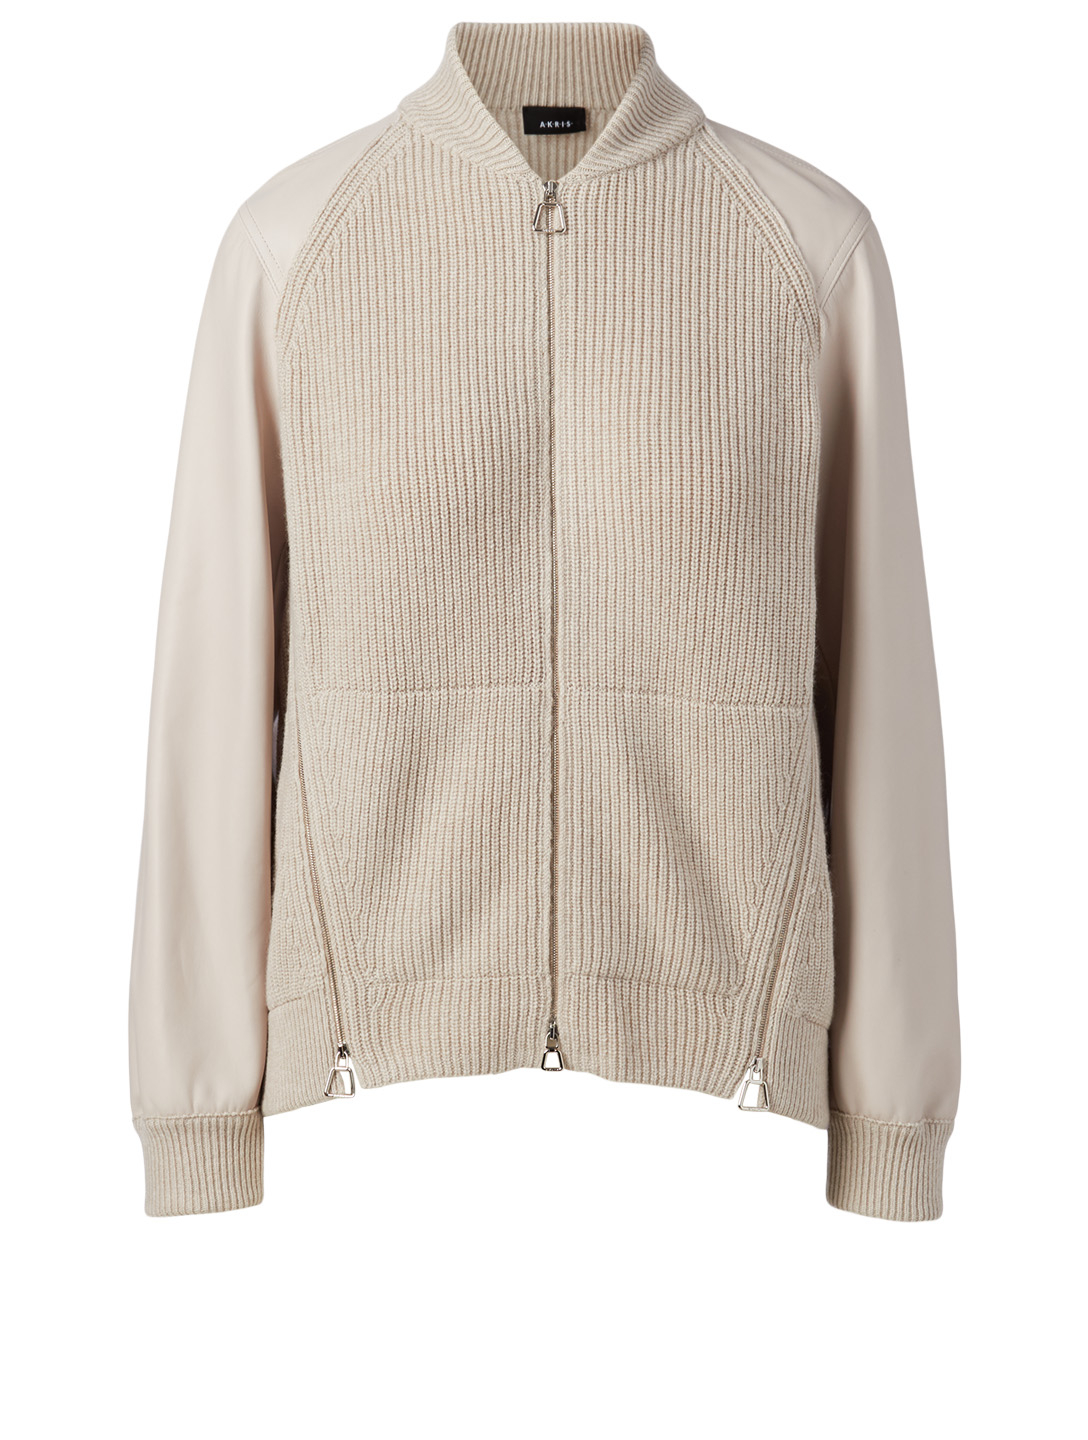 AKRIS Cashmere And Leather Cardigan Women's Beige